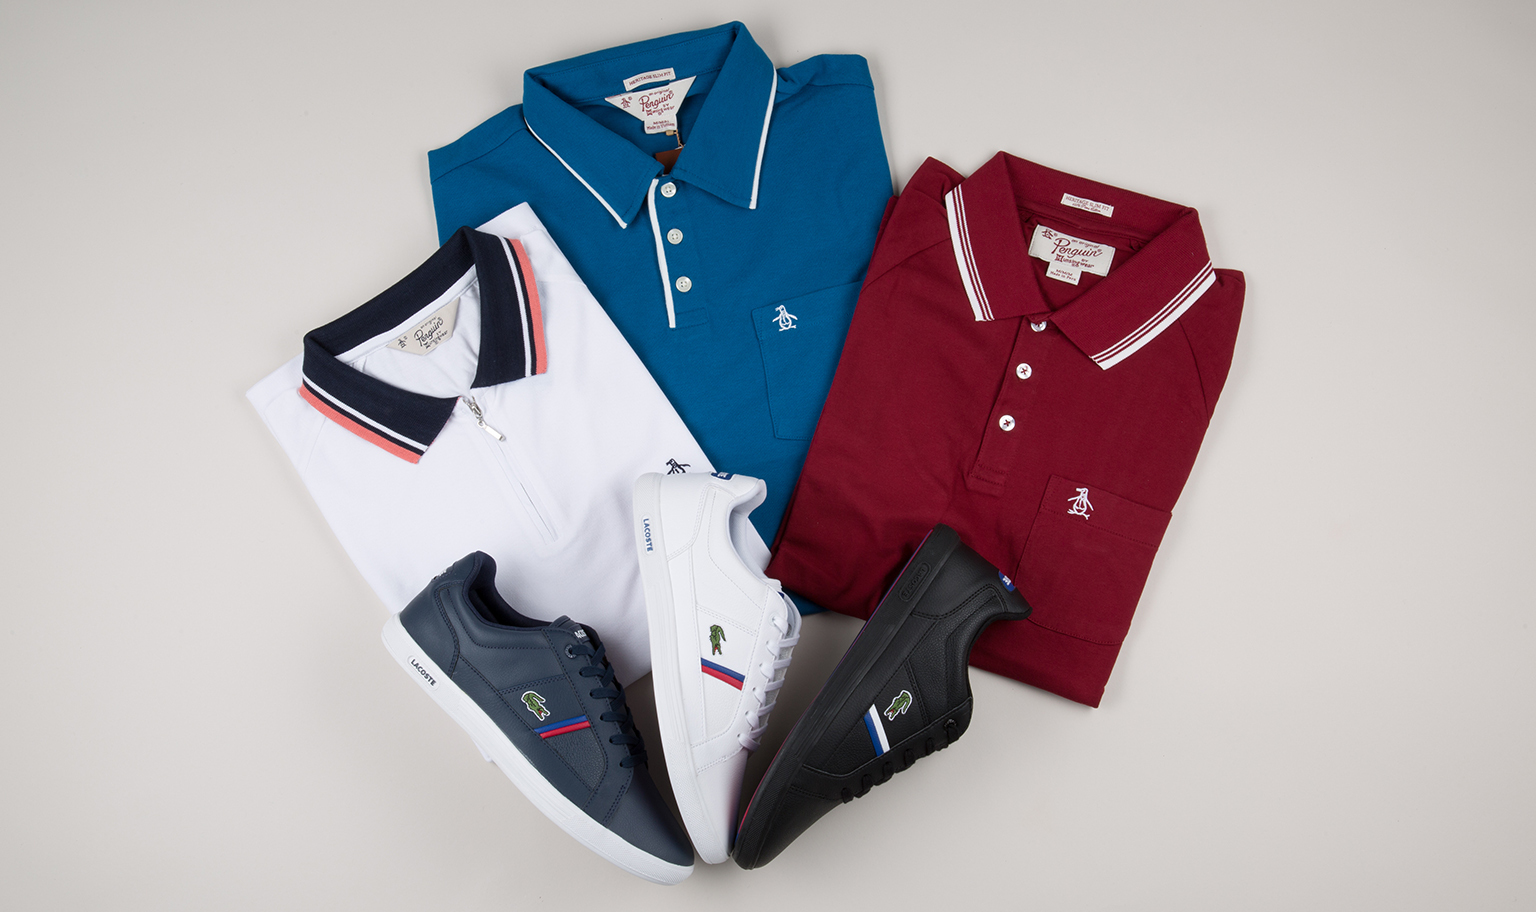 Up To 45% Off Penguin & Lacoste